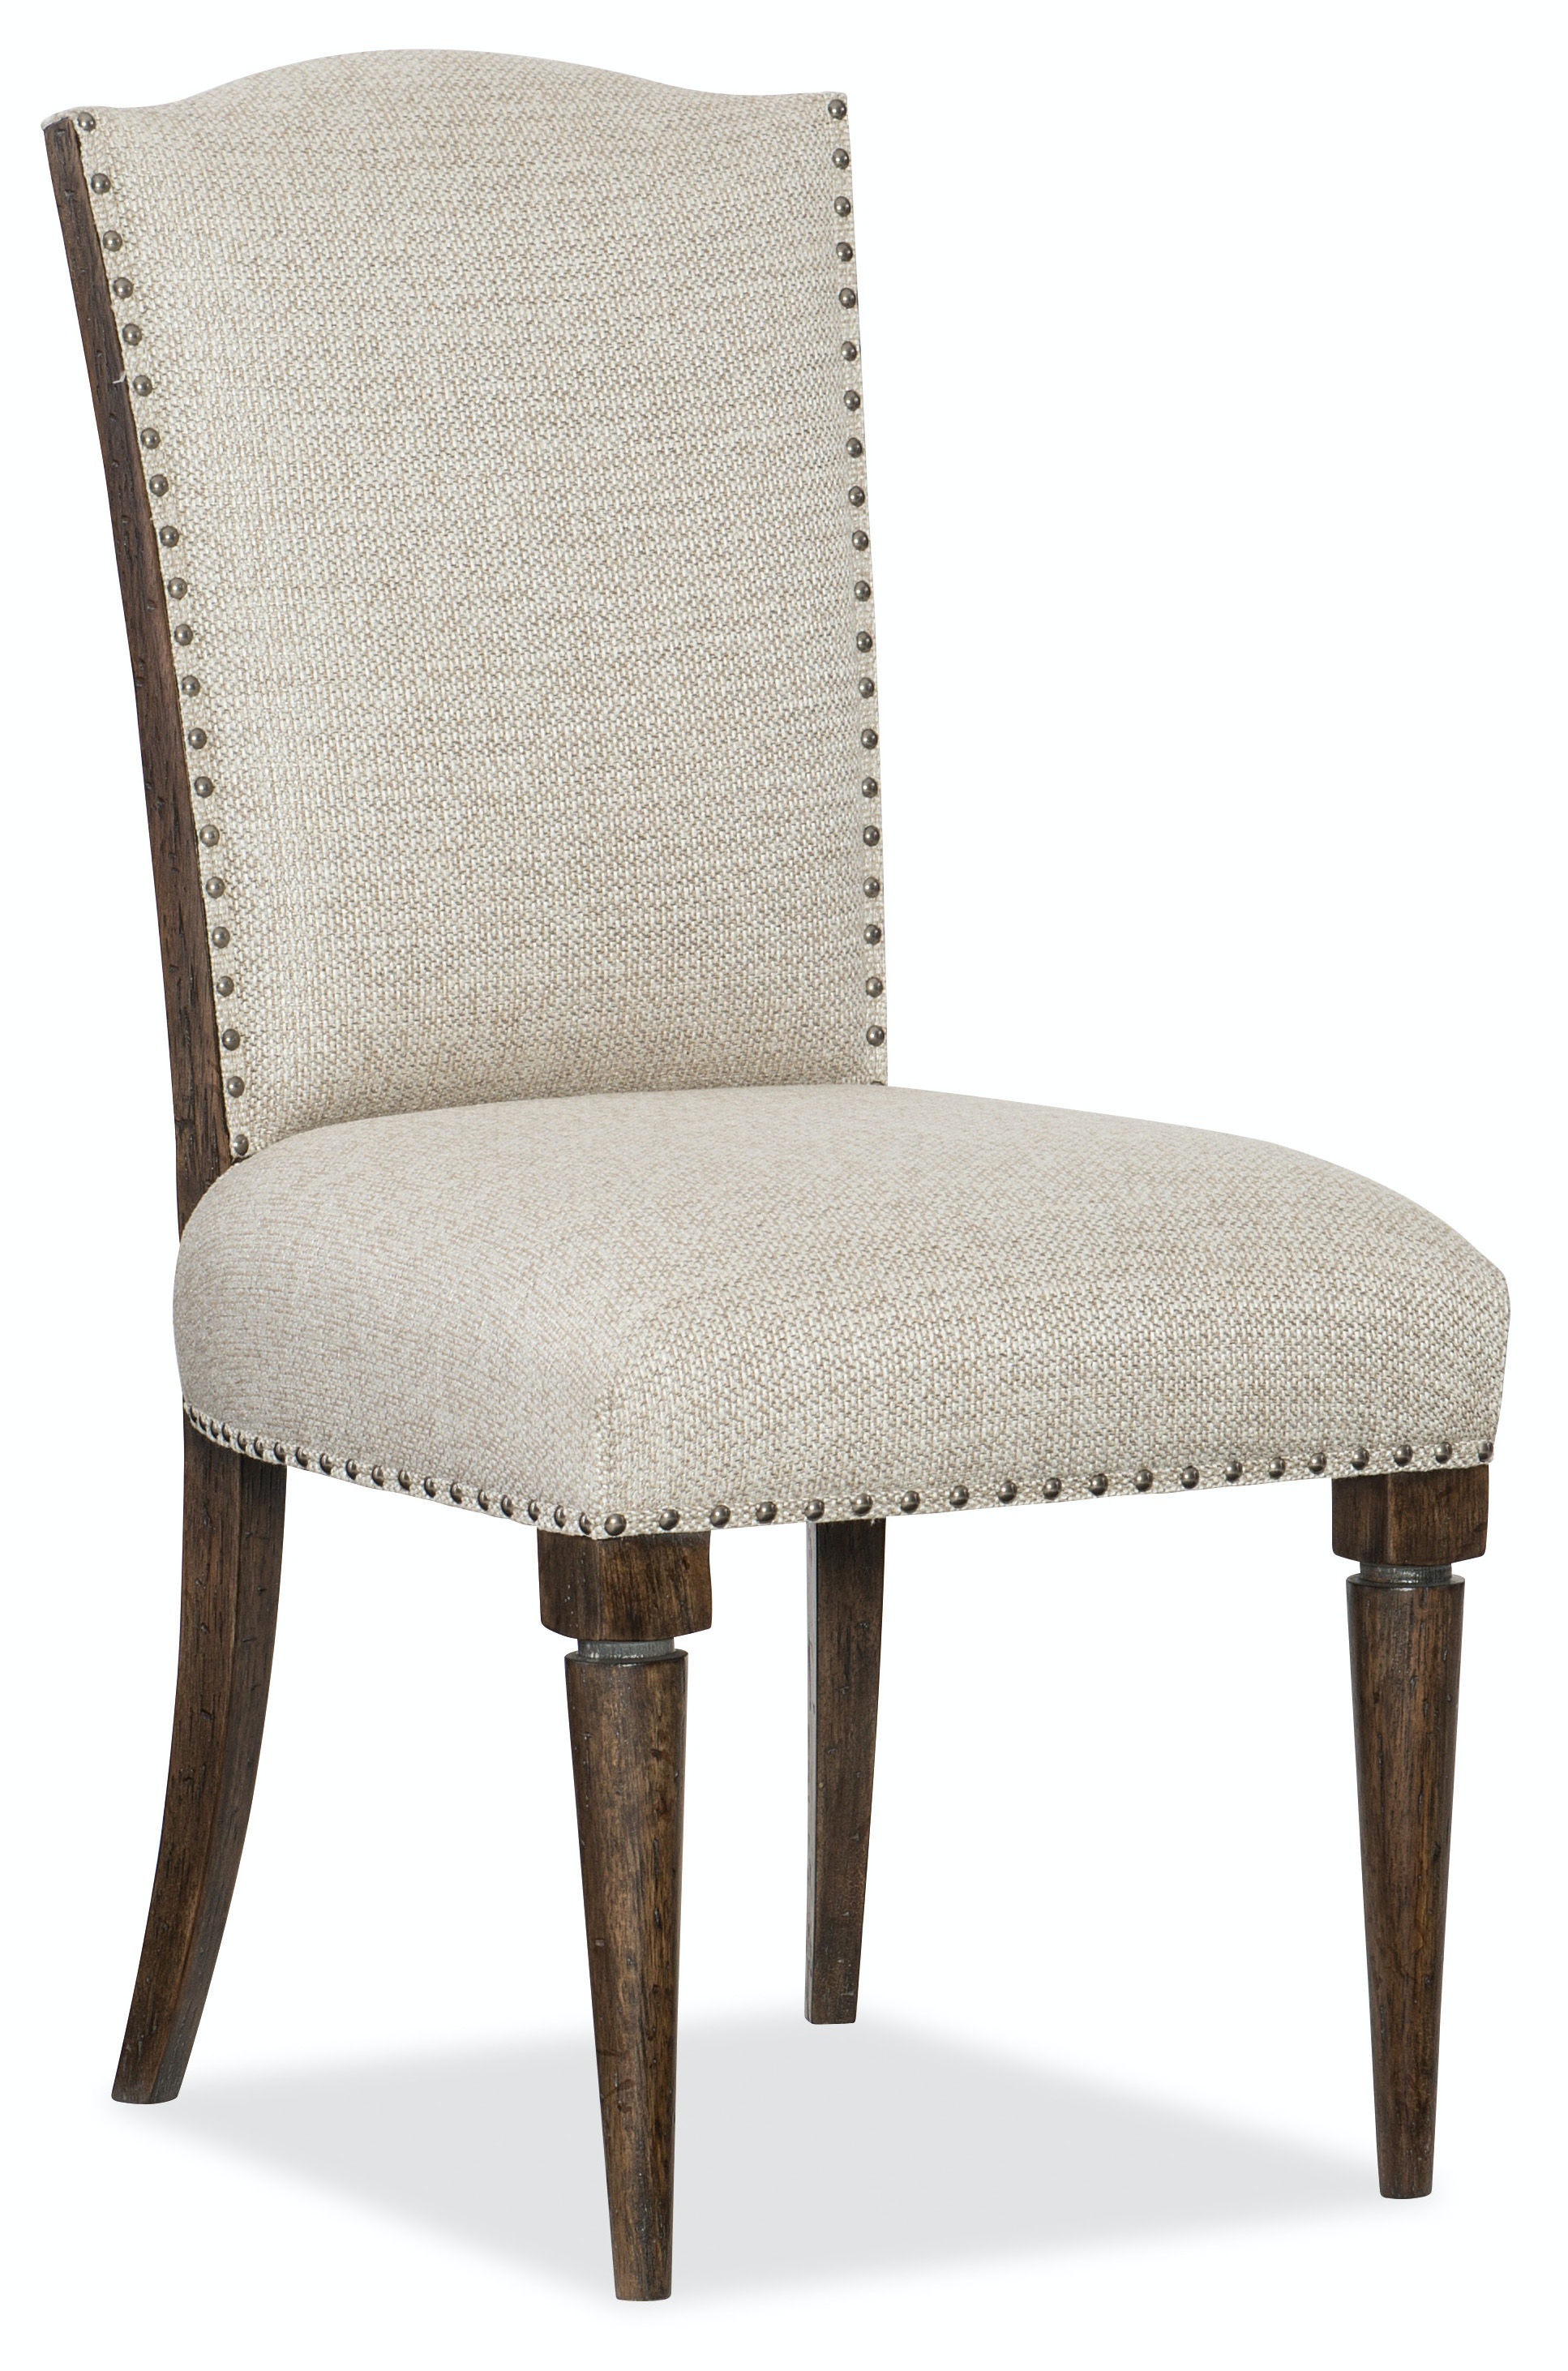 Hooker Furniture Roslyn County Deconstructed Upholstered Side Chair  1618 75710 DKW